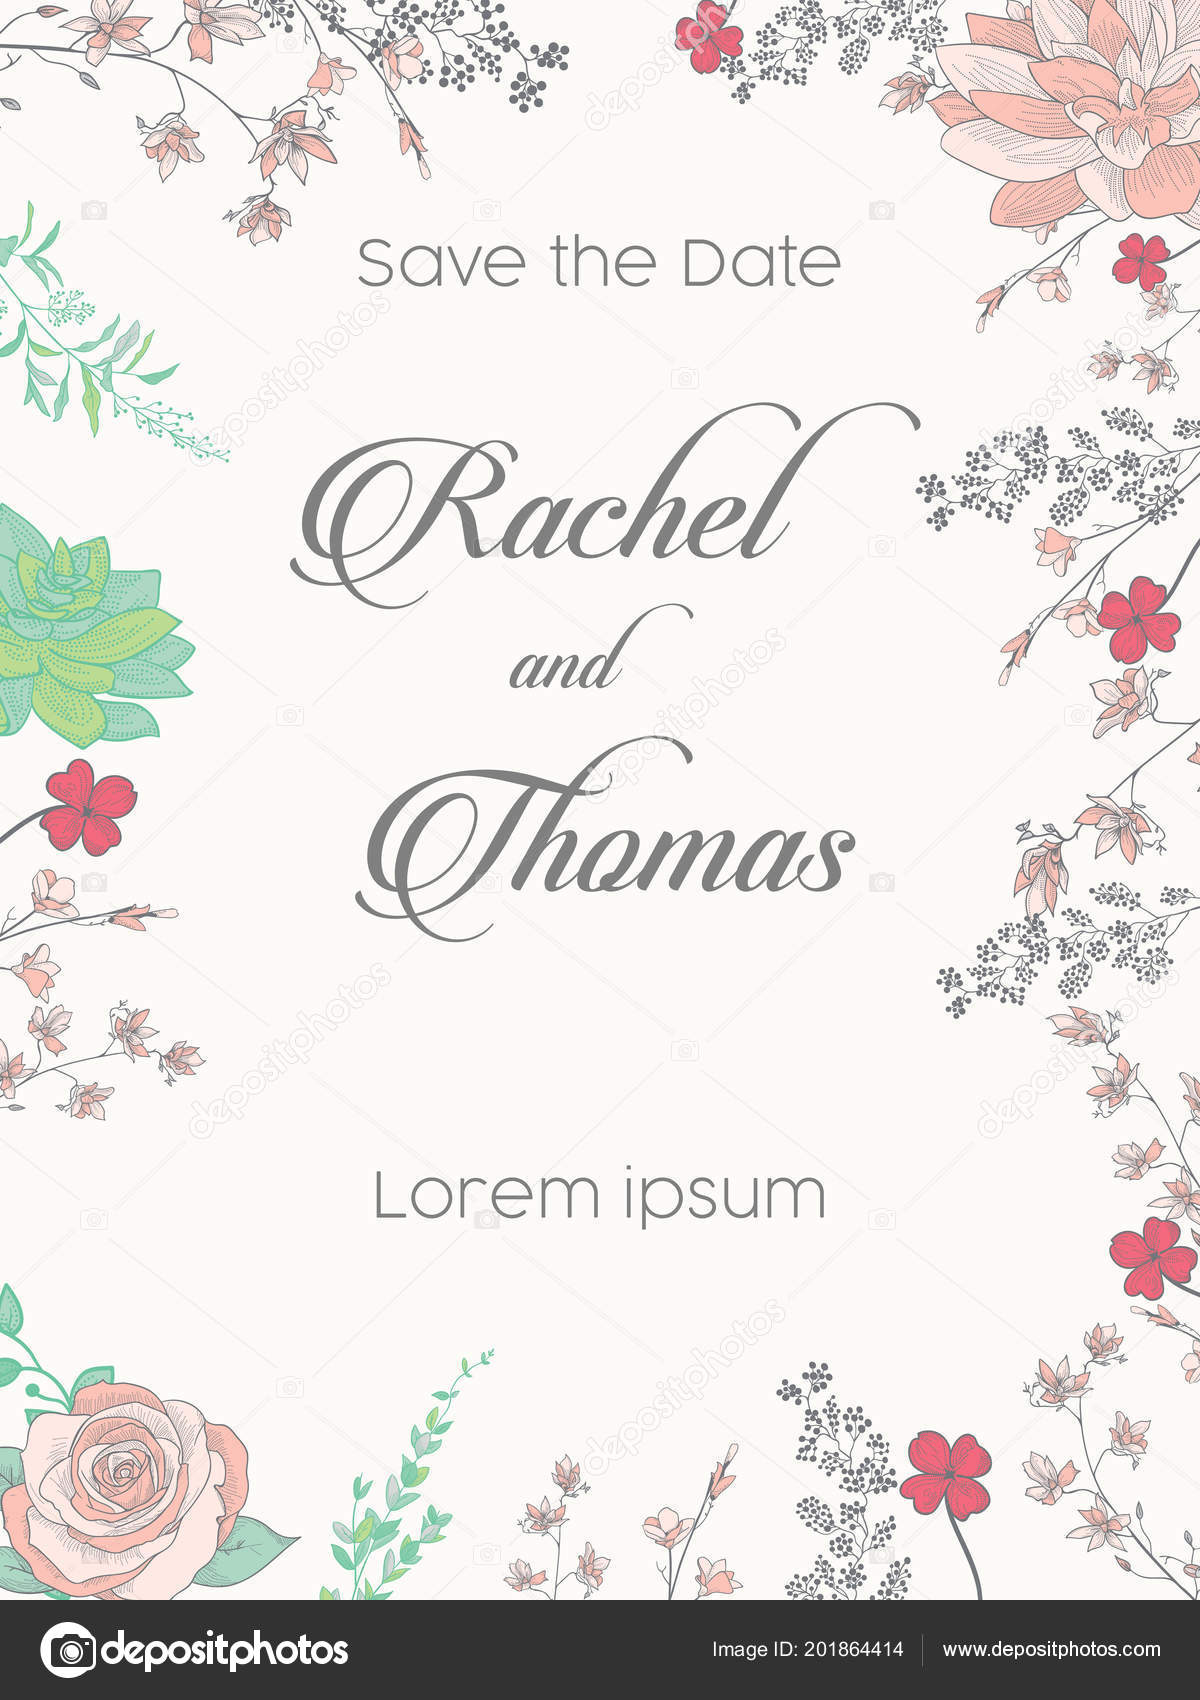 Wedding party invitation date card templates lily valley flowers wedding party invitation date card templates lily valley flowers hand vetores de stock stopboris Image collections